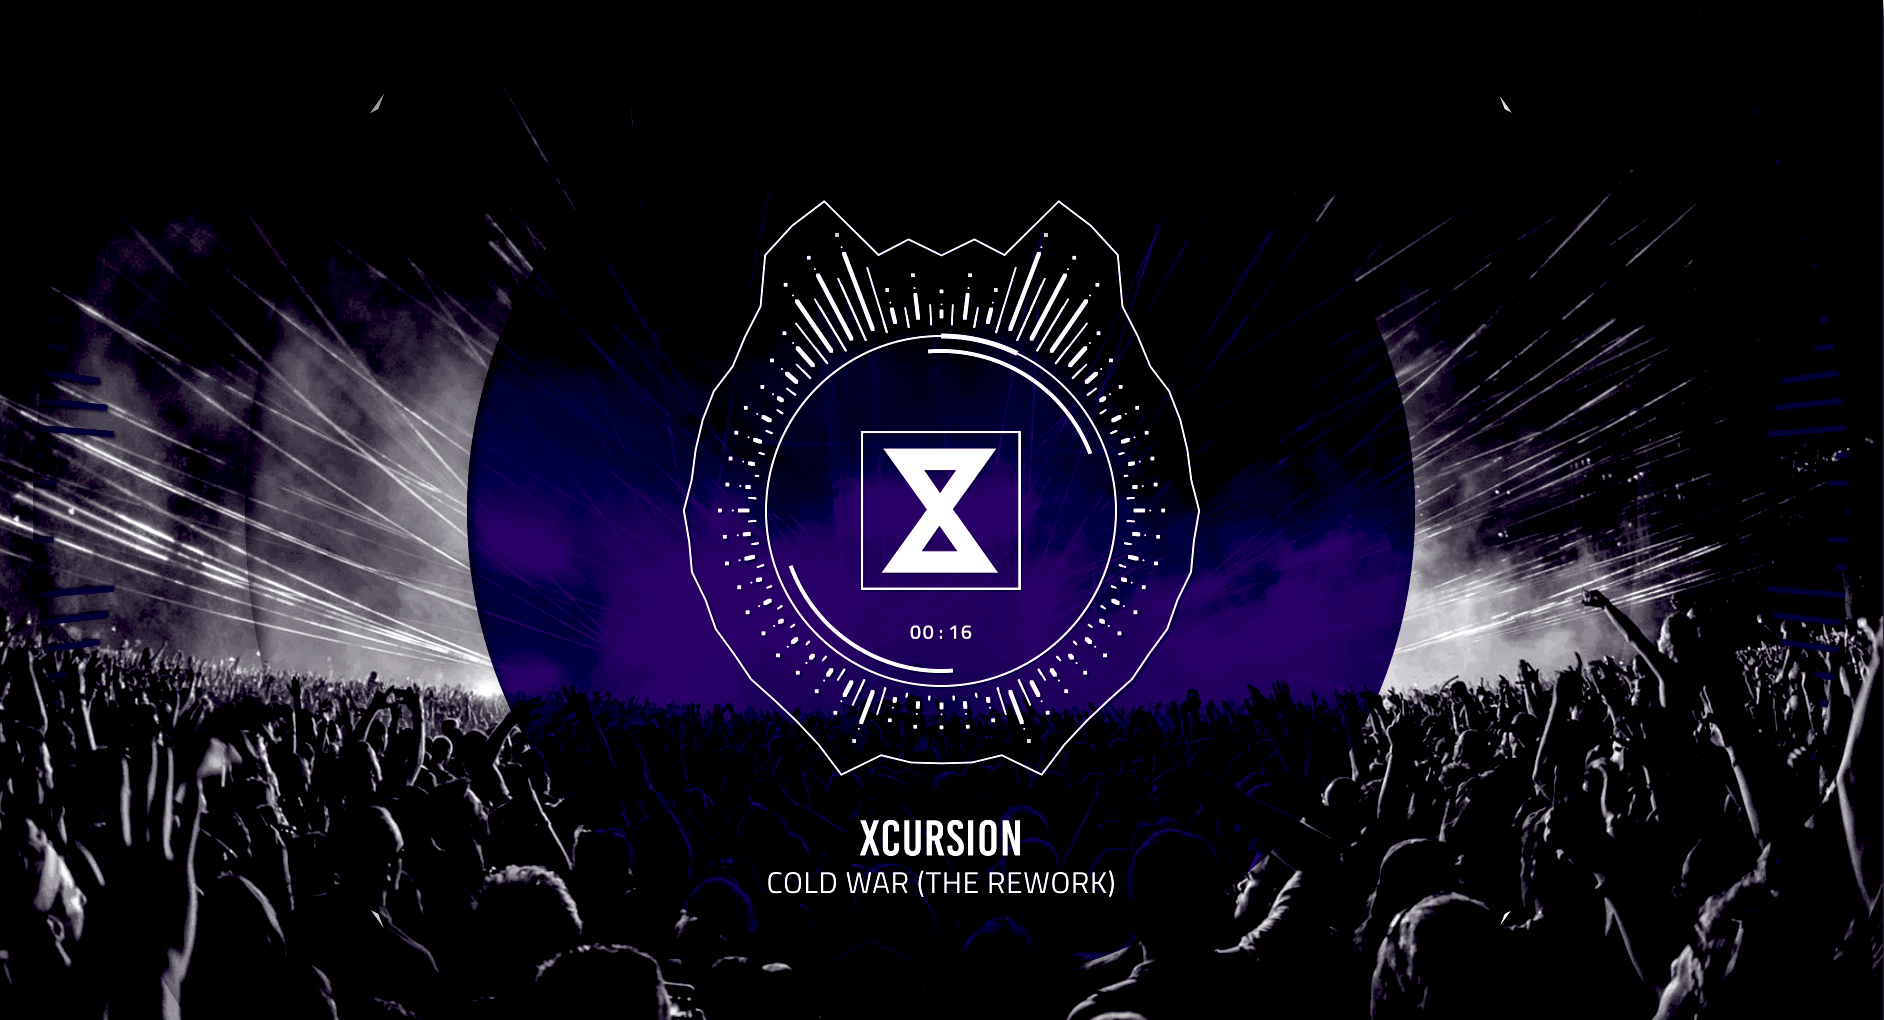 Xcursion Ft Bethany-Joy - Cold War (The Rework) (Cold War (The Rework) - Single)